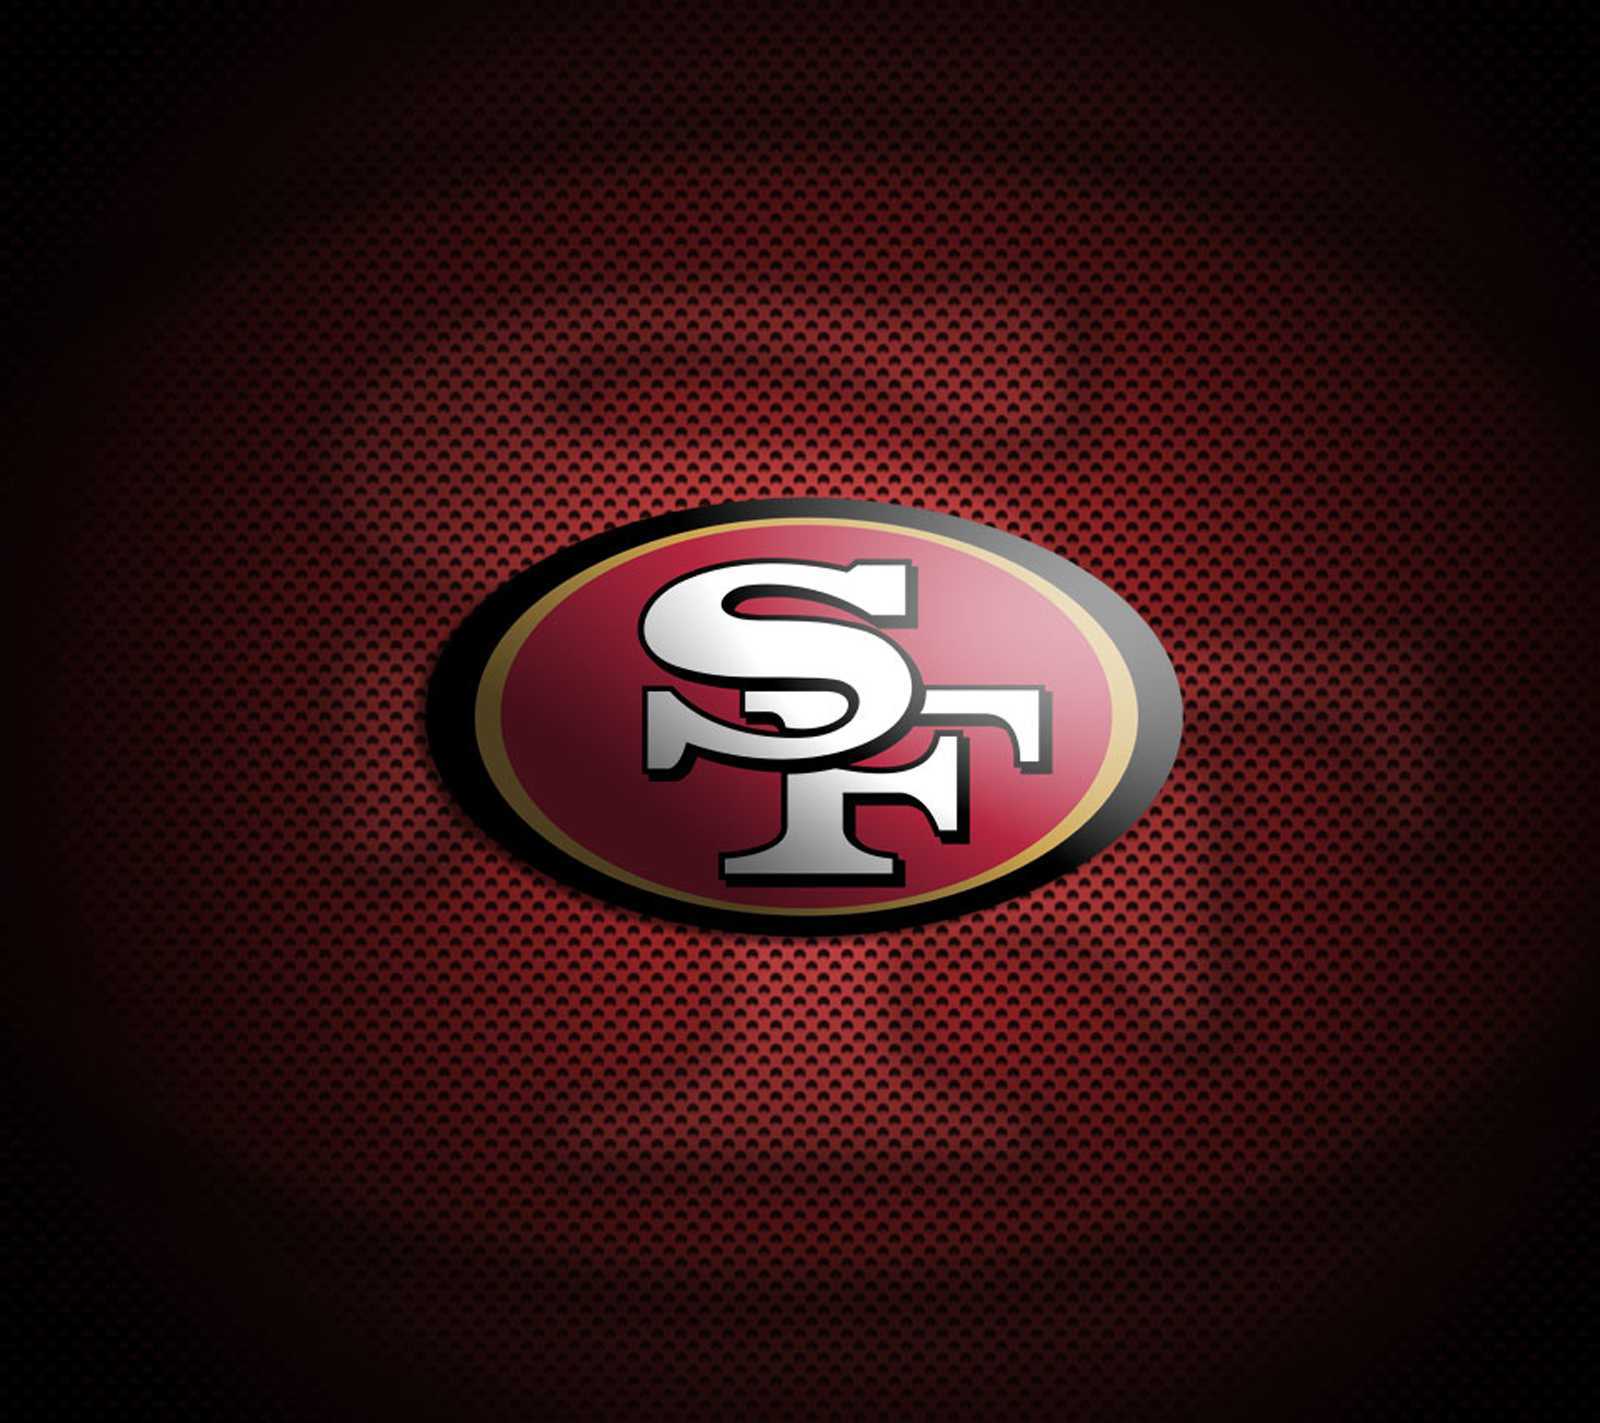 Picture Of Nike Basketball Quotes Hd Wallpapers San Francisco 49ers Logo Hd Wallpapers Pixelstalk Net